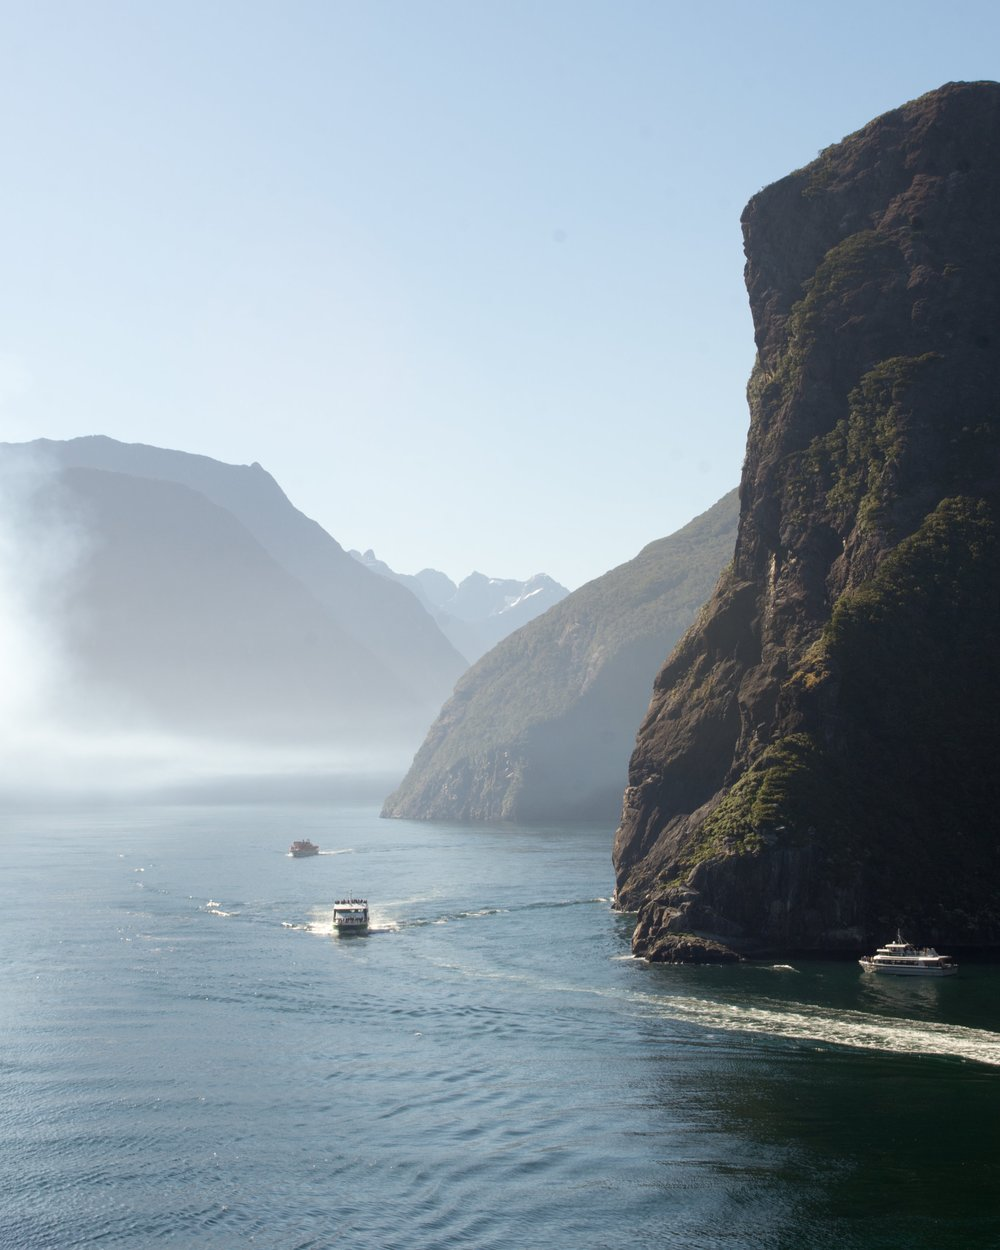 Exiting Milford Sound